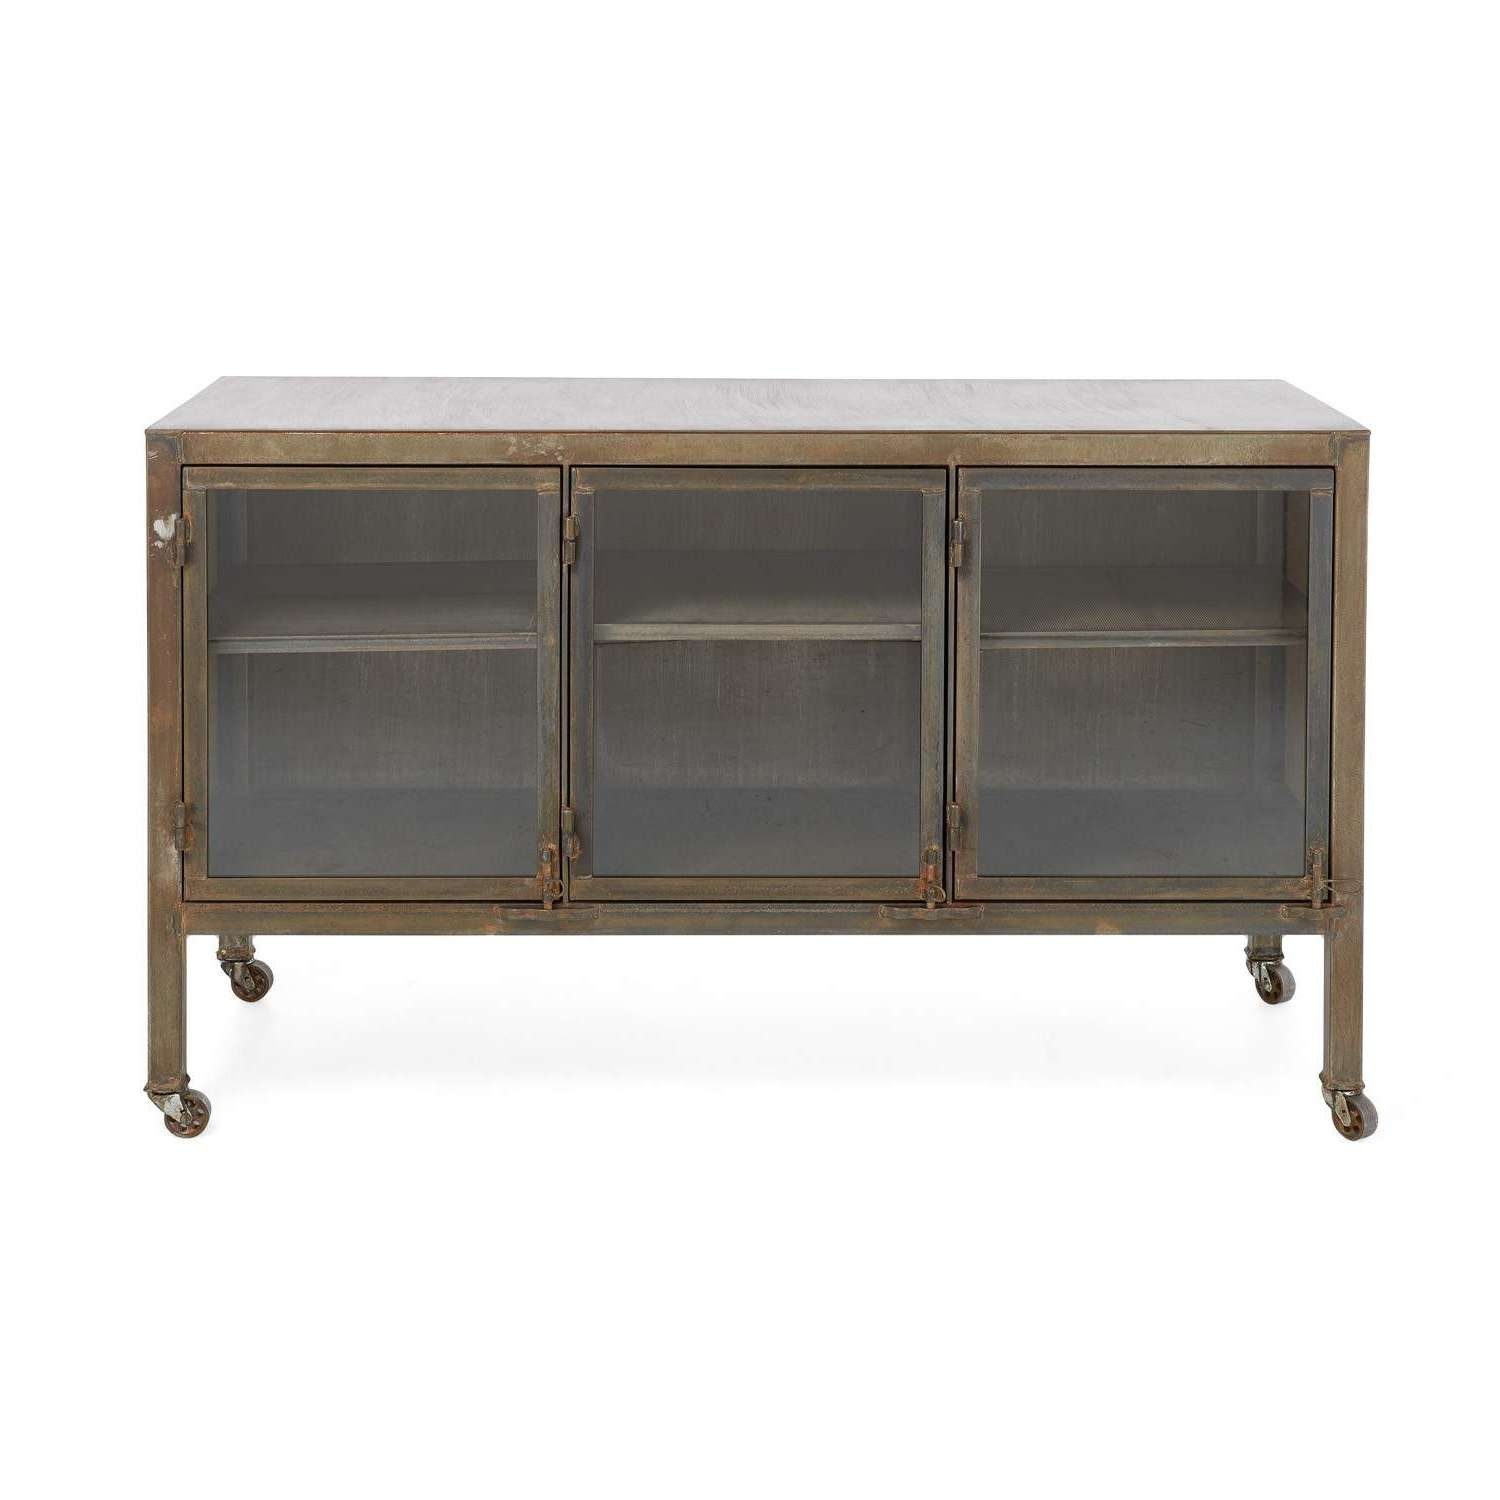 Sideboards For Your Nyc Apartment Or Home At Abc Home Inside Magic Sideboards (View 14 of 24)